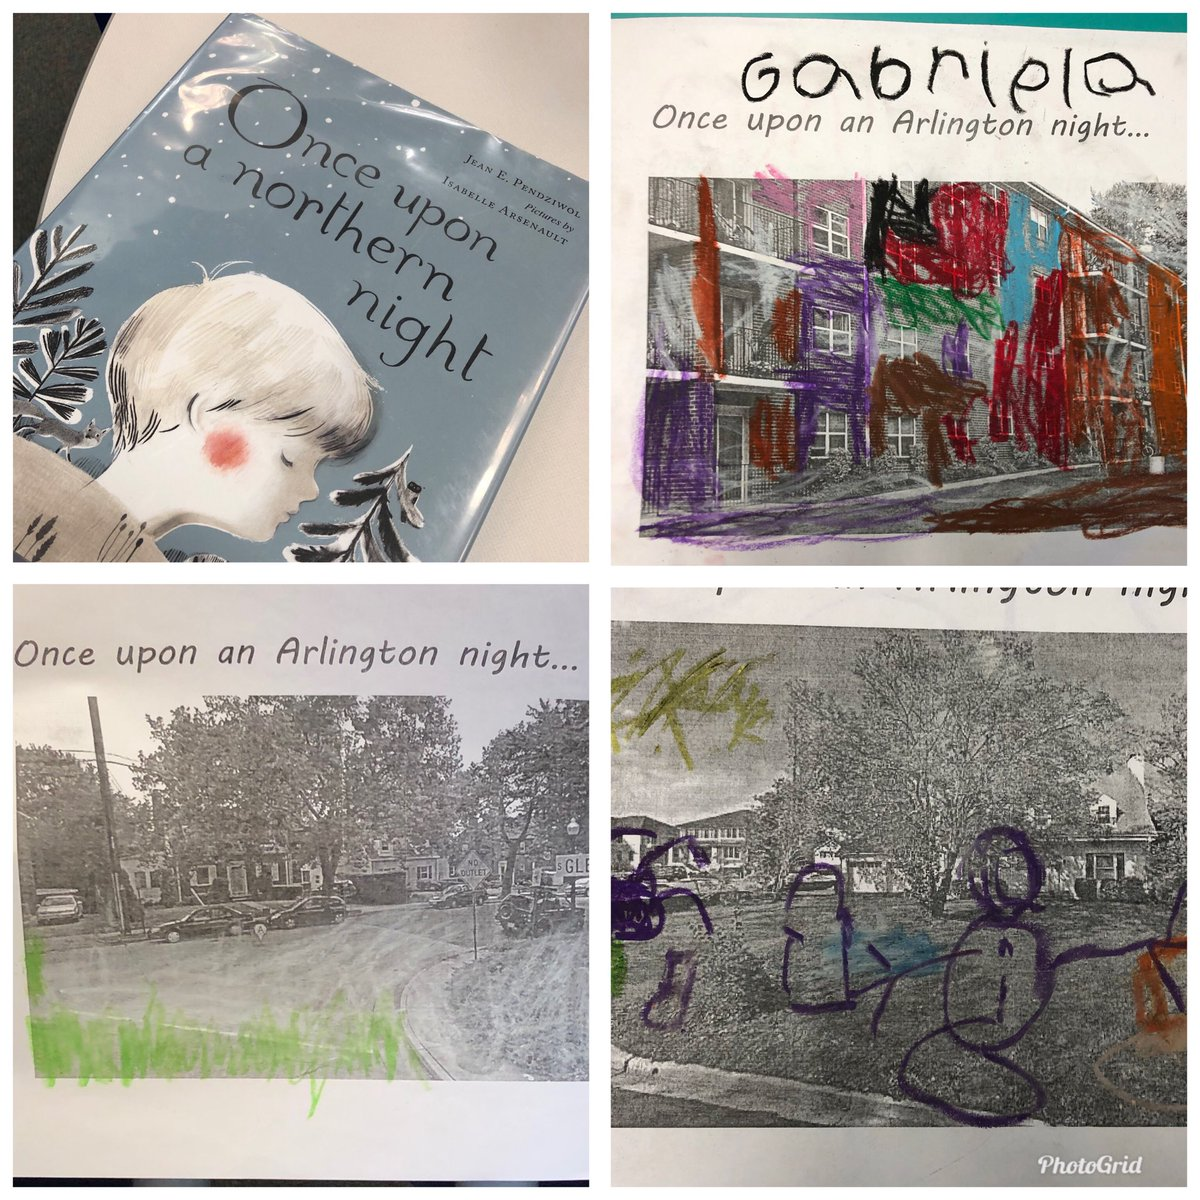 After hearing Once Upon a Northern Night, Barcroft Kindergarteners created winter night scenes overtop of photos of their own homes and street.  Connecting books to home. <a target='_blank' href='http://twitter.com/APSLibrarians'>@APSLibrarians</a> <a target='_blank' href='http://twitter.com/APSVirginia'>@APSVirginia</a> <a target='_blank' href='http://twitter.com/SitronArt'>@SitronArt</a> <a target='_blank' href='http://twitter.com/GabyRivasAPS'>@GabyRivasAPS</a> <a target='_blank' href='http://twitter.com/BarcroftEagles'>@BarcroftEagles</a> <a target='_blank' href='https://t.co/vPxq1y8G0u'>https://t.co/vPxq1y8G0u</a>